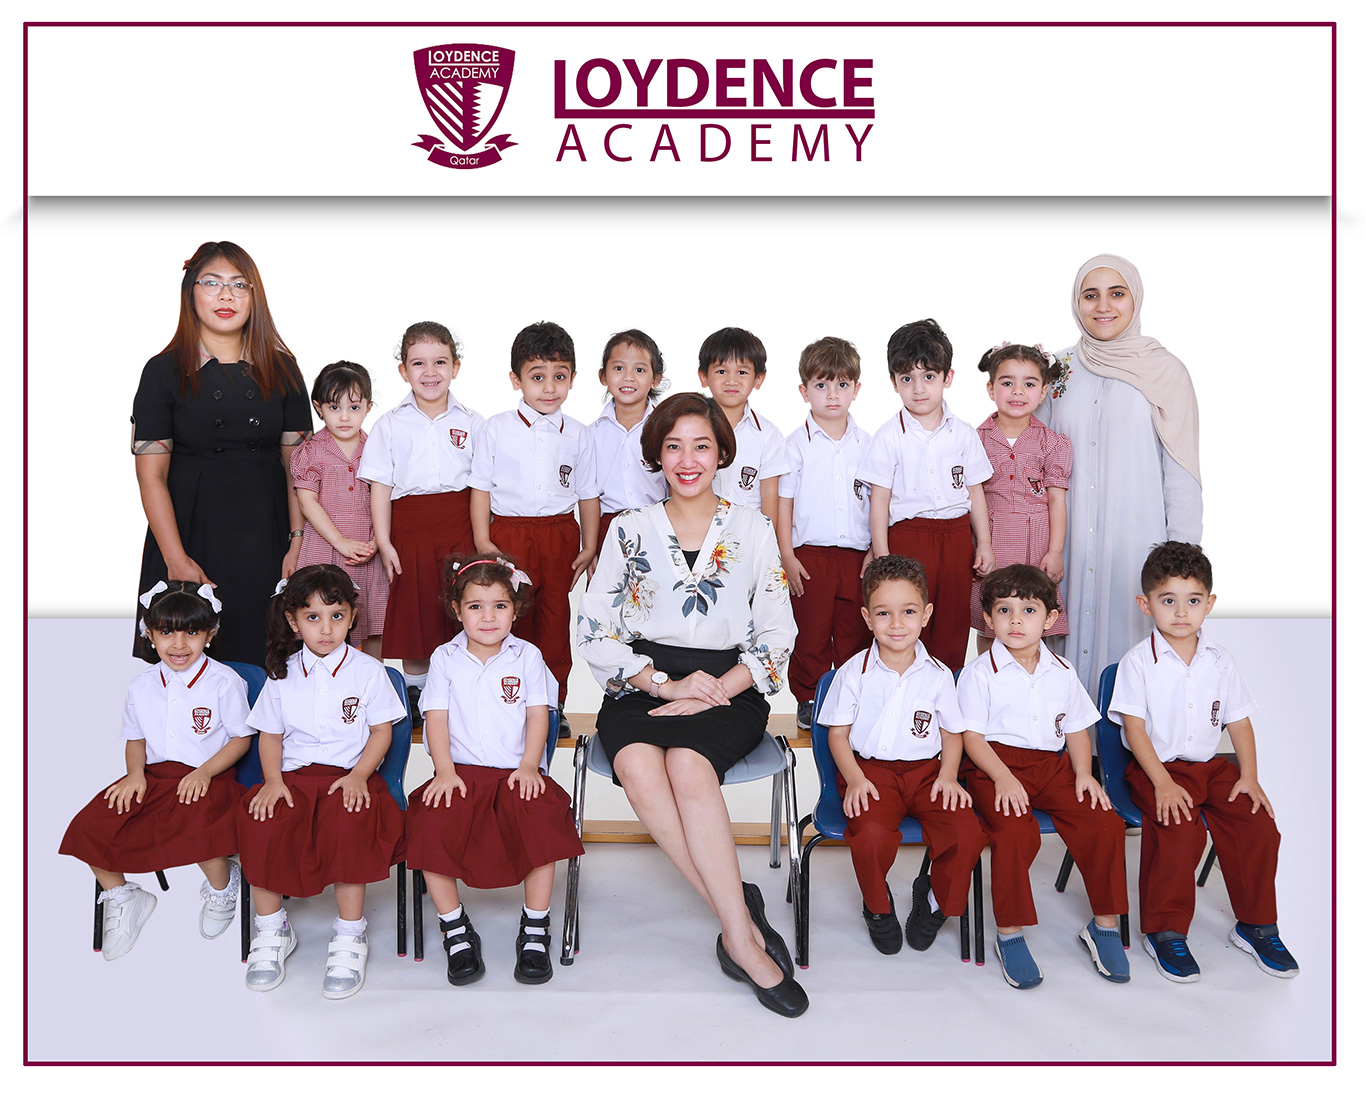 Professional School Photography Company in Doha Qatar